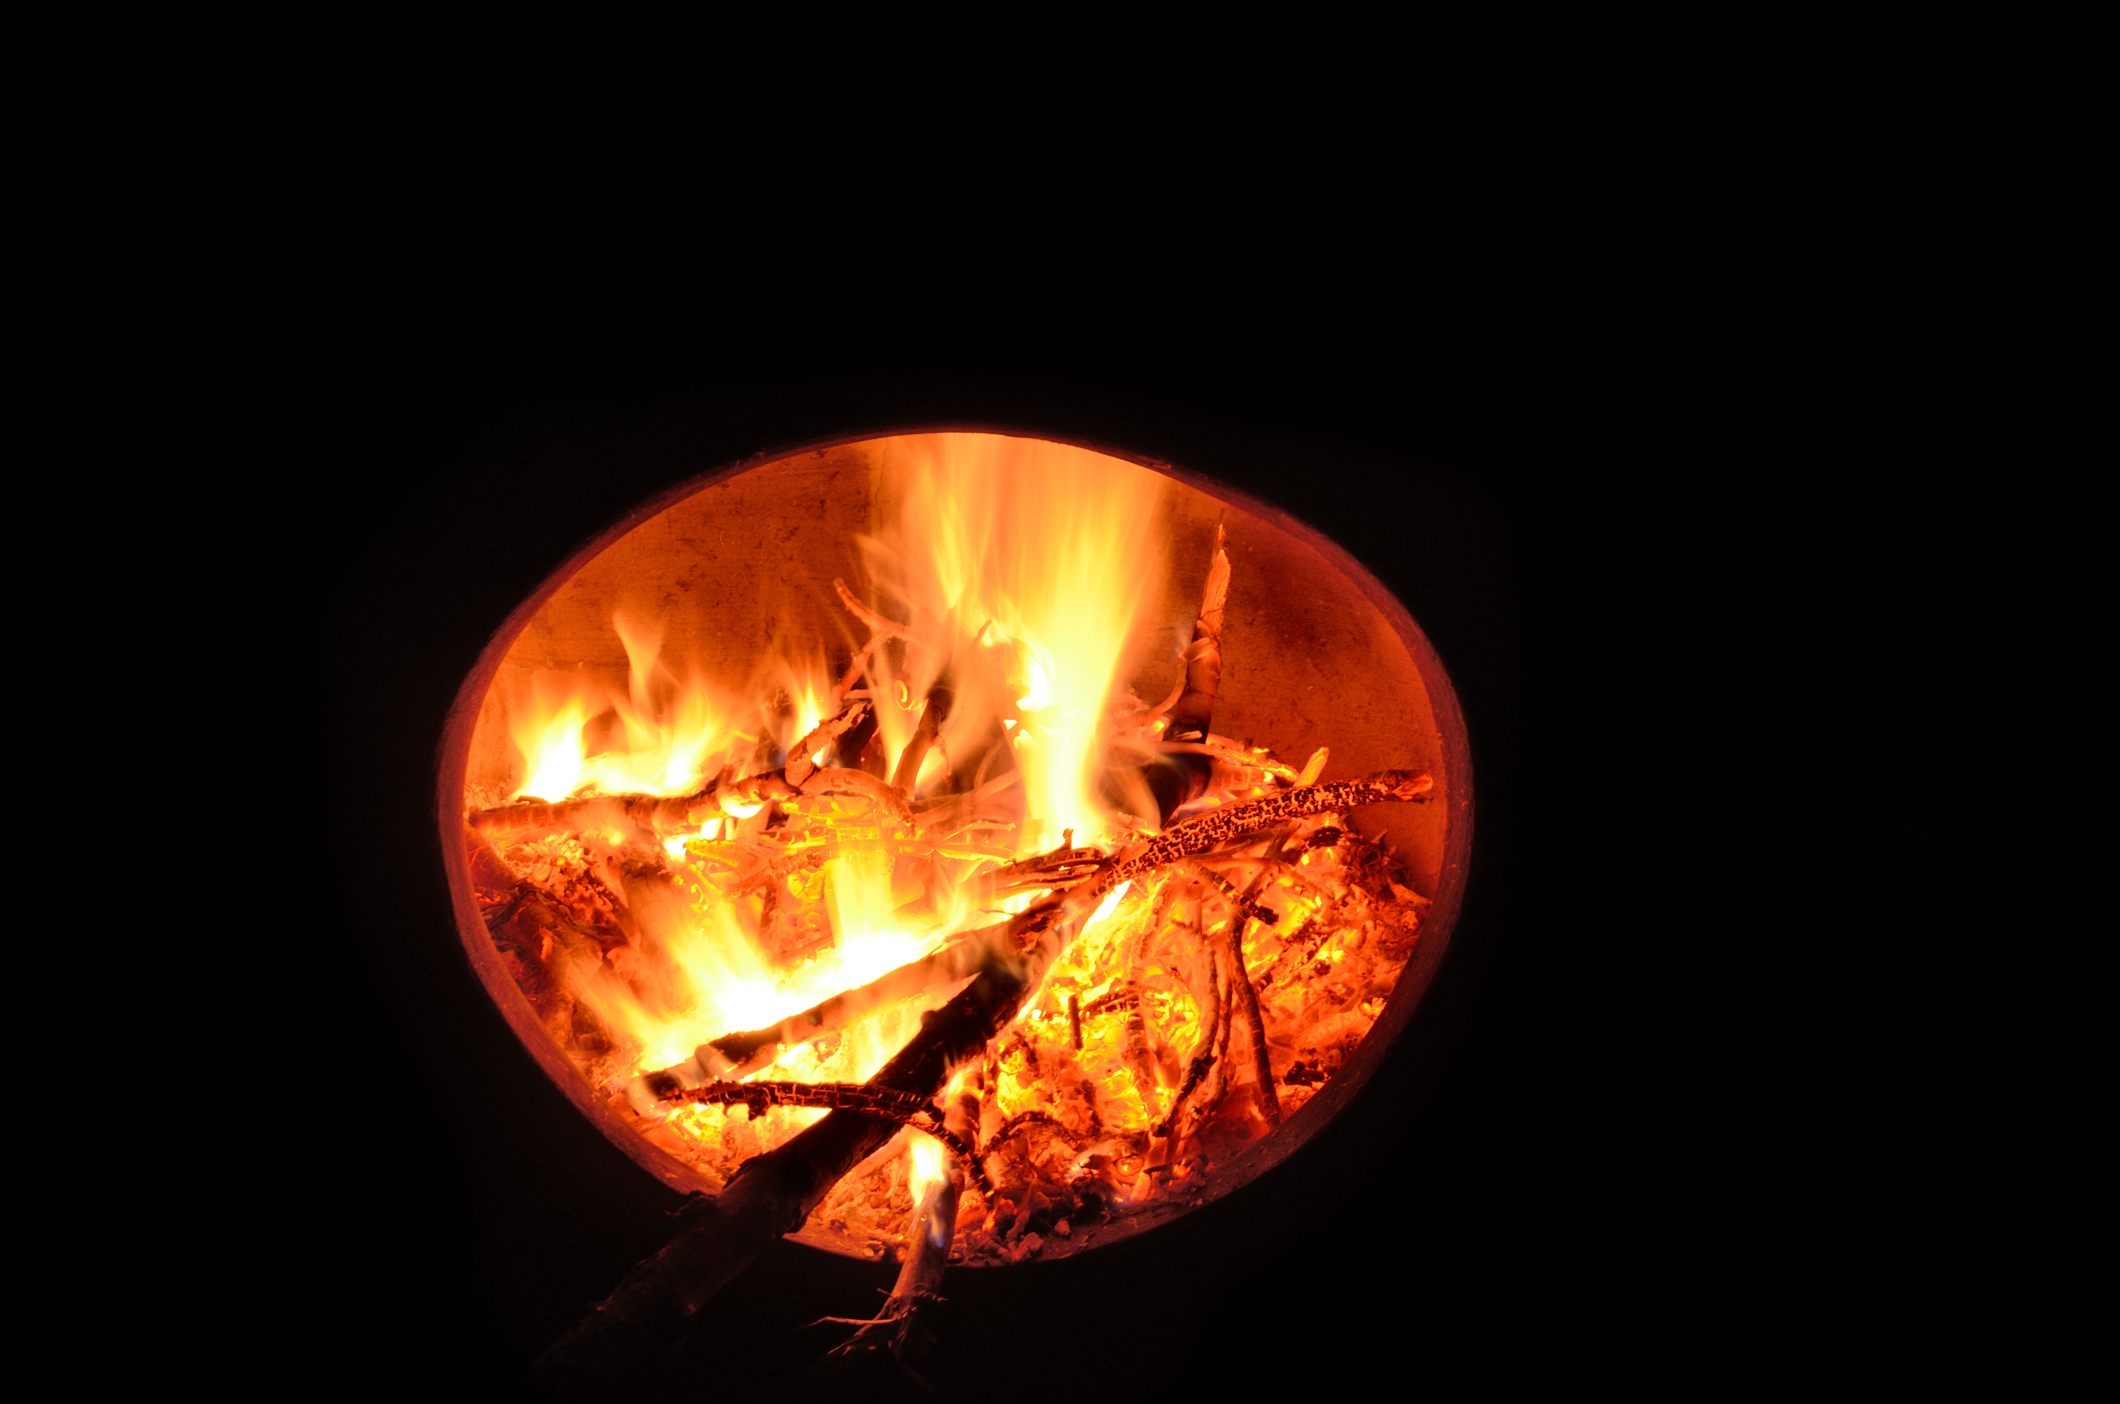 Photograph of burning twigs and branches in a chiminea